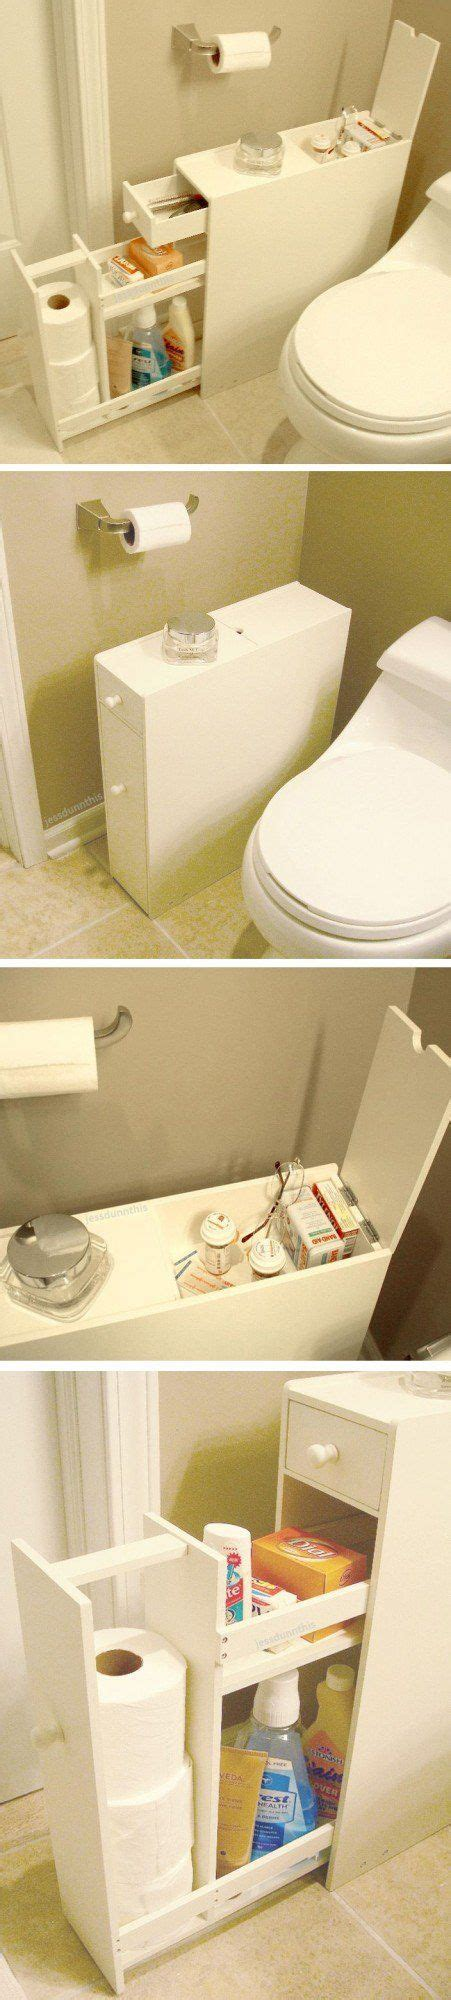 storage ideas for tiny bathrooms best 25 small bathroom storage ideas on